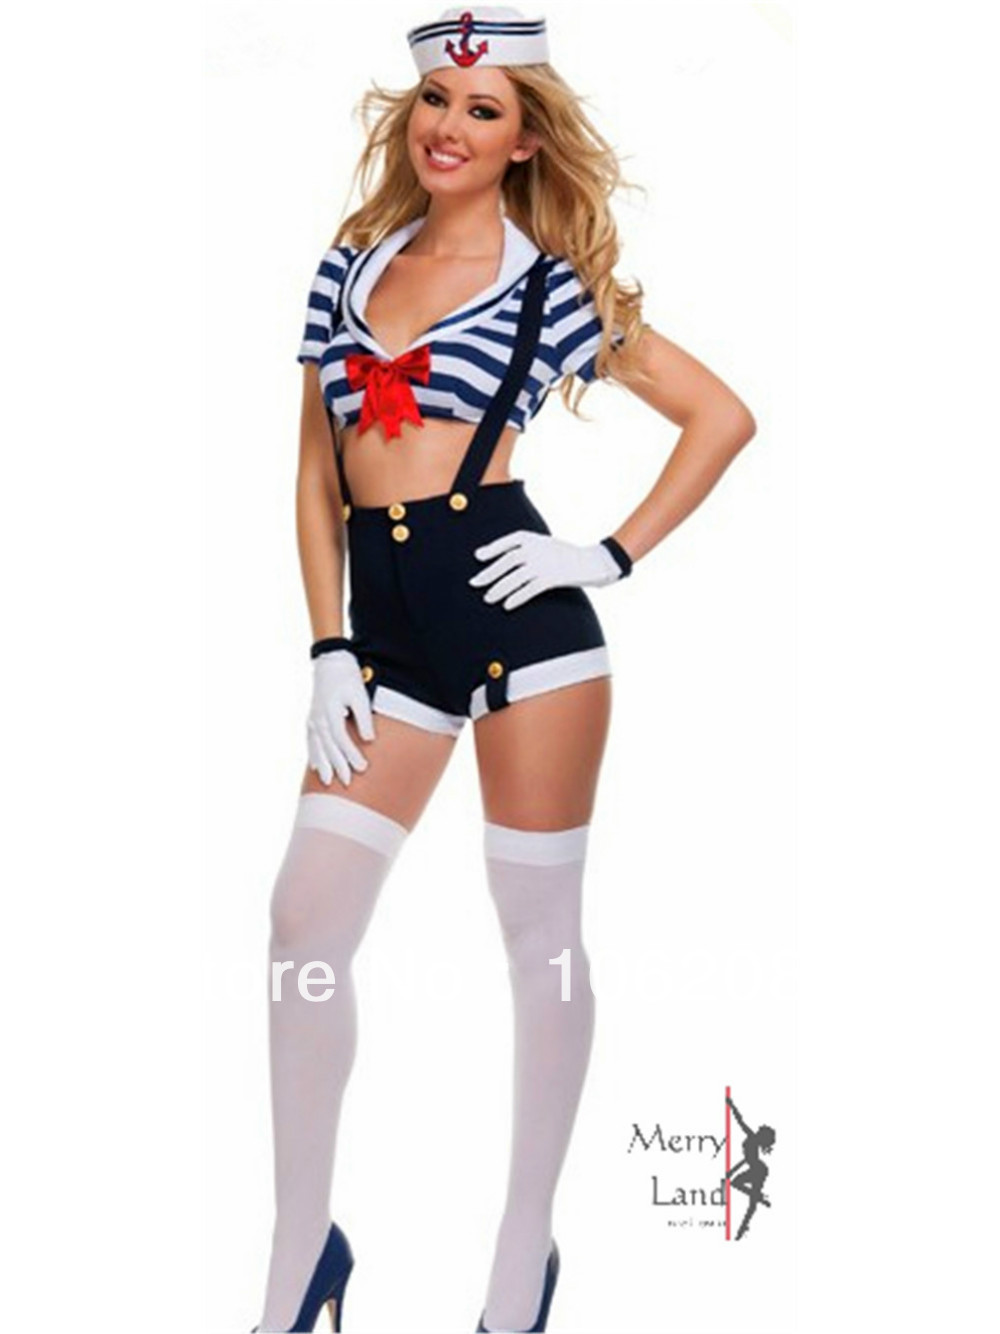 Halloween costume ideas 2017 monthly calendar free printable white sexy halloween costume ideas halloween costumes ideas for adults solutioingenieria Gallery